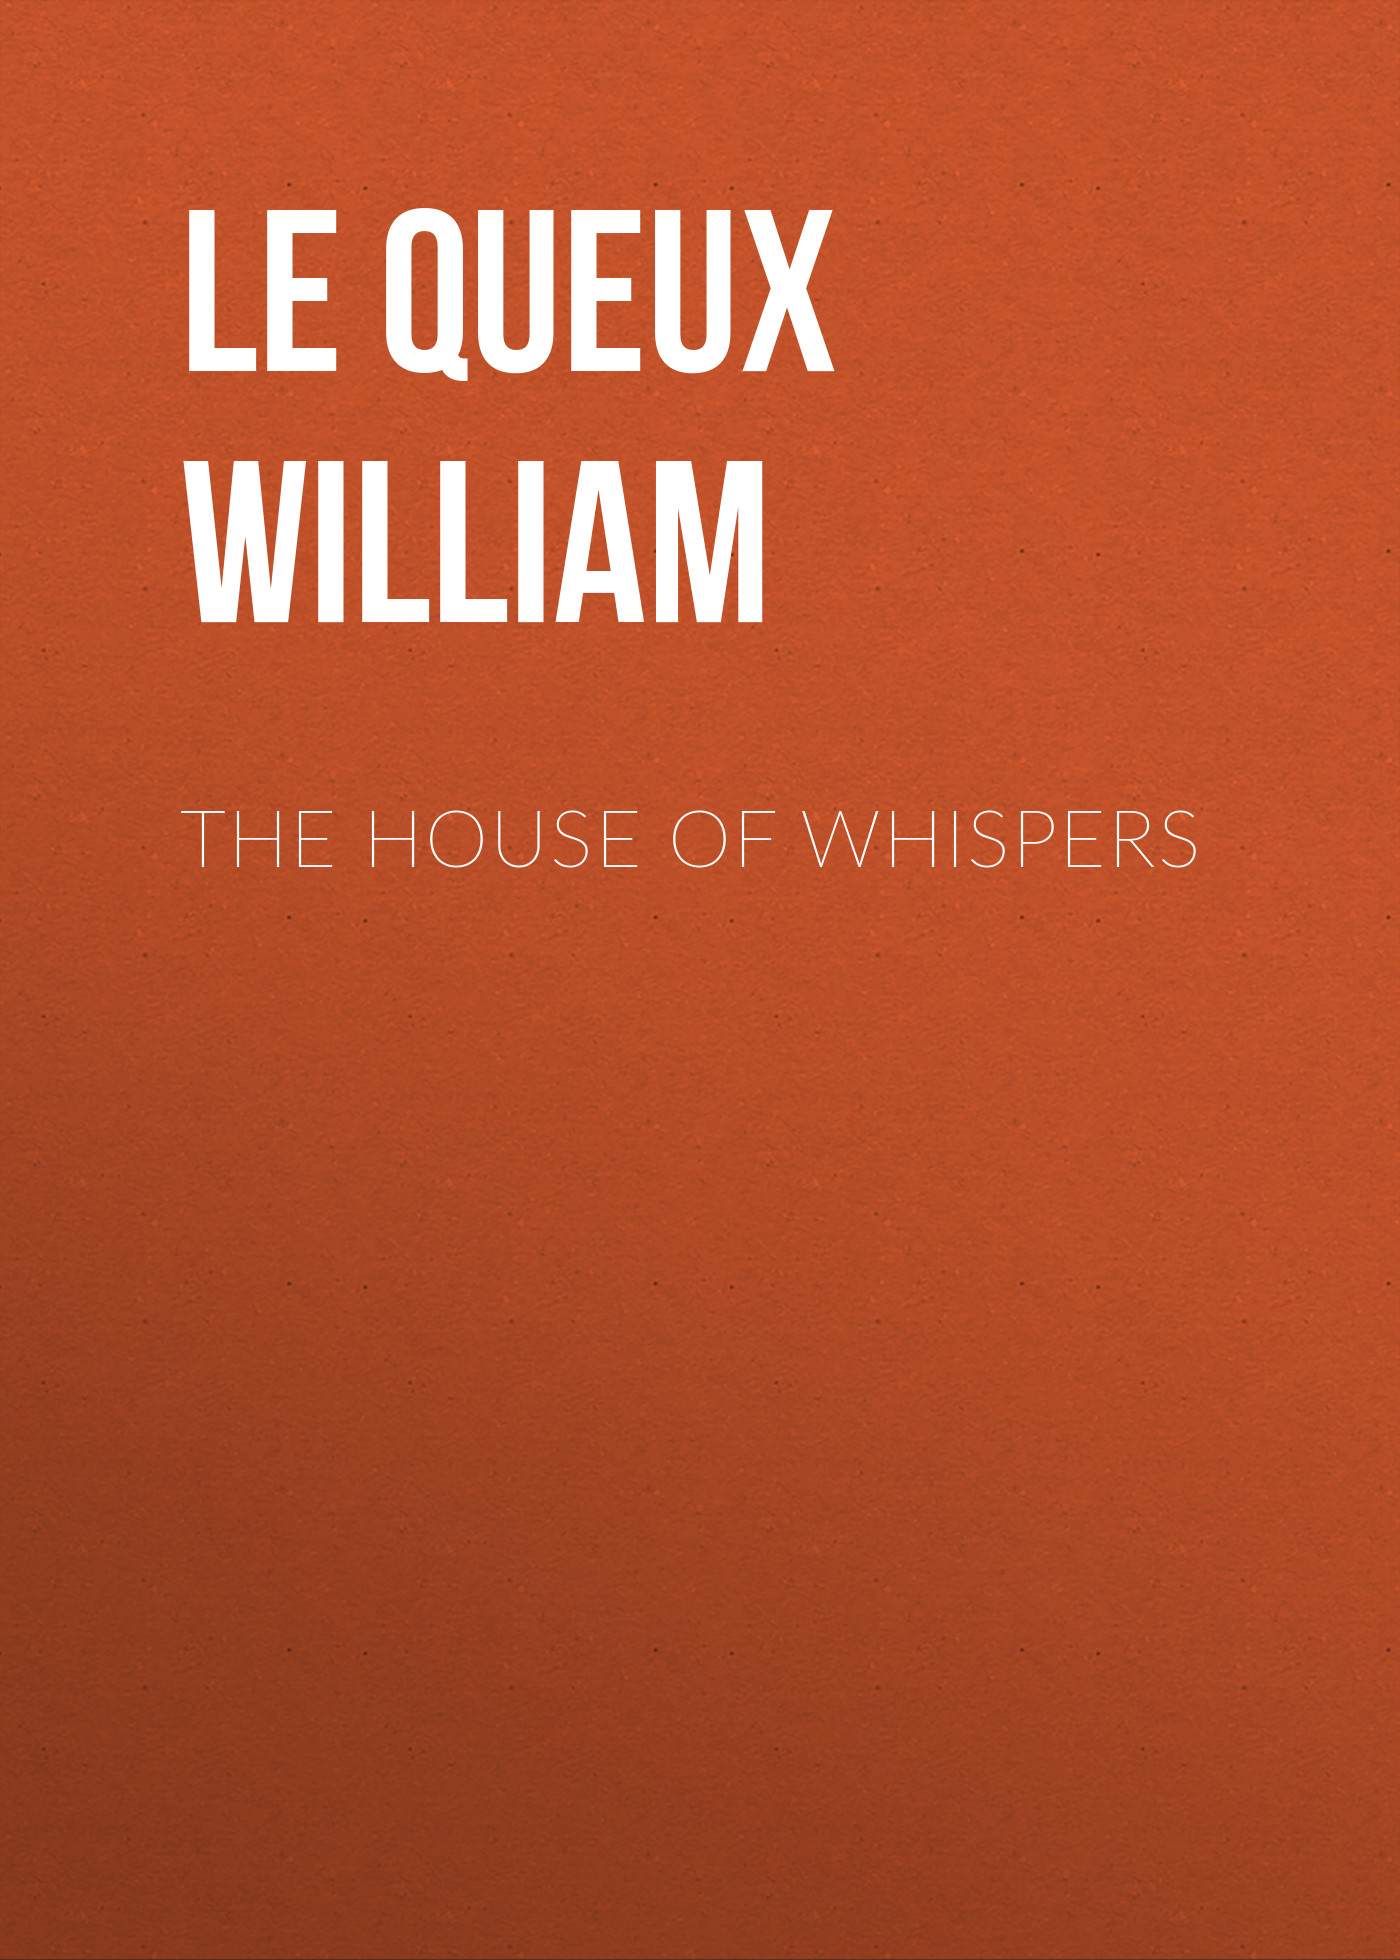 Le Queux William The House of Whispers цена и фото